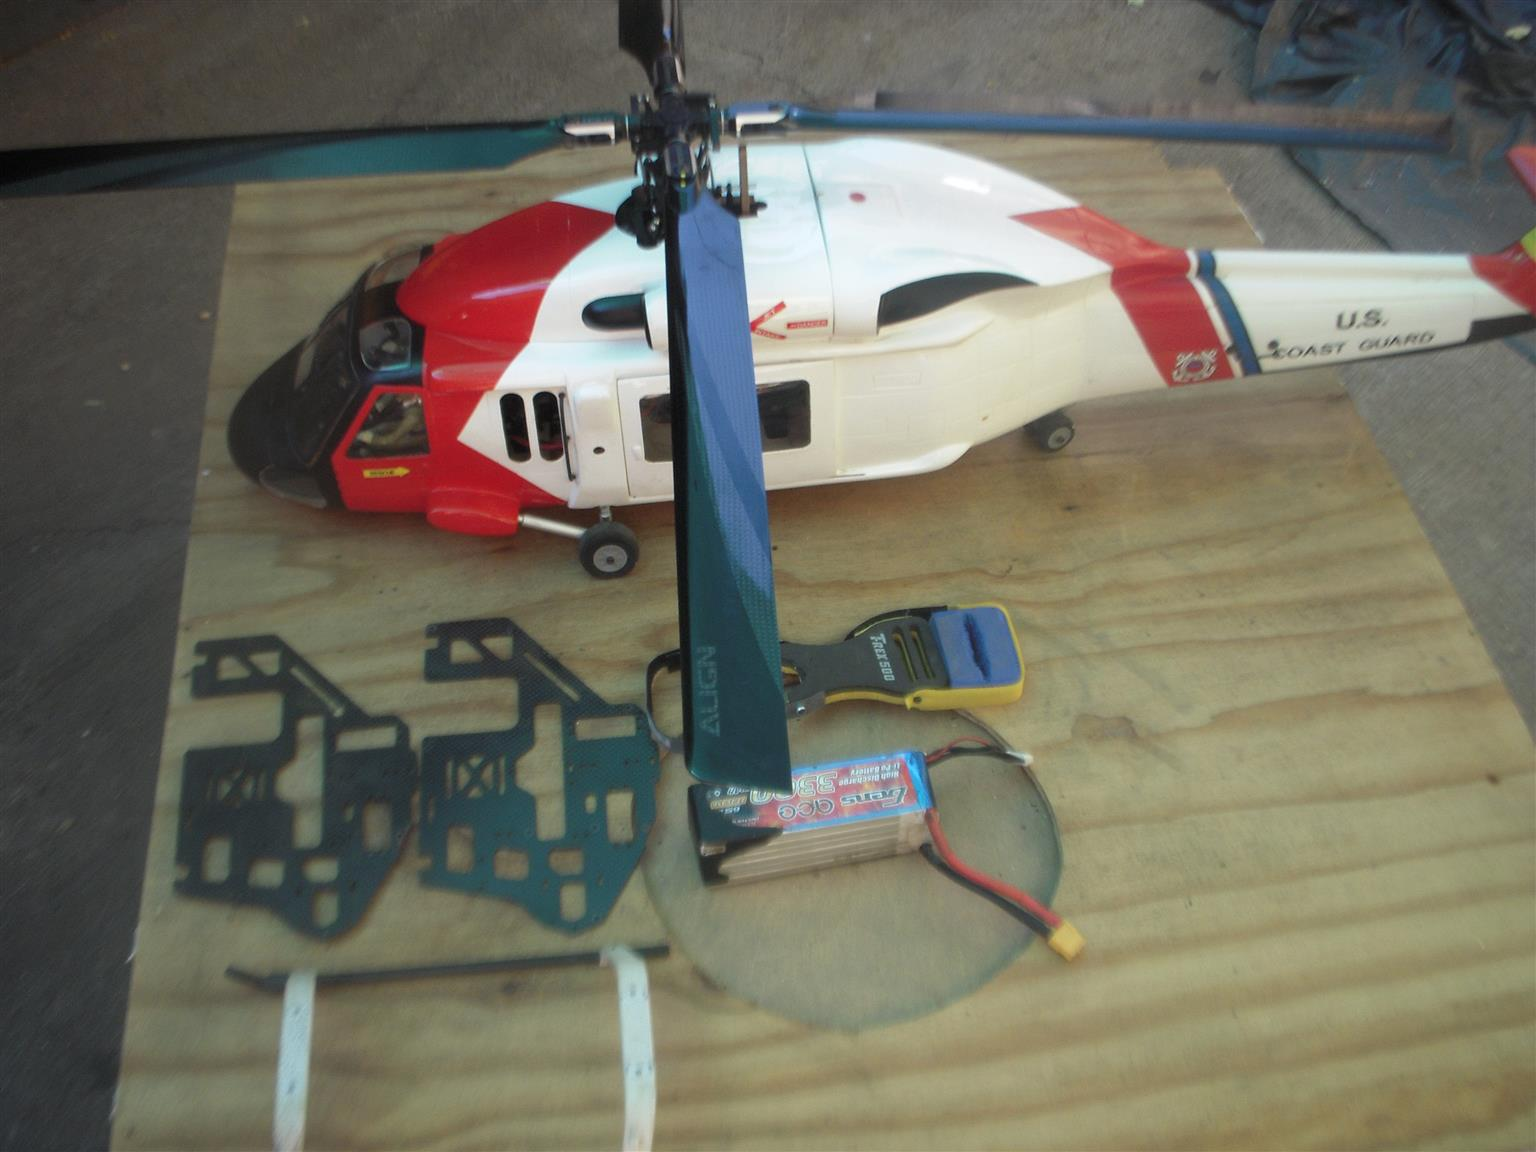 ALIGN 500 U,S. COAST GUARD FOUR BLADE R/C HELICOPTER